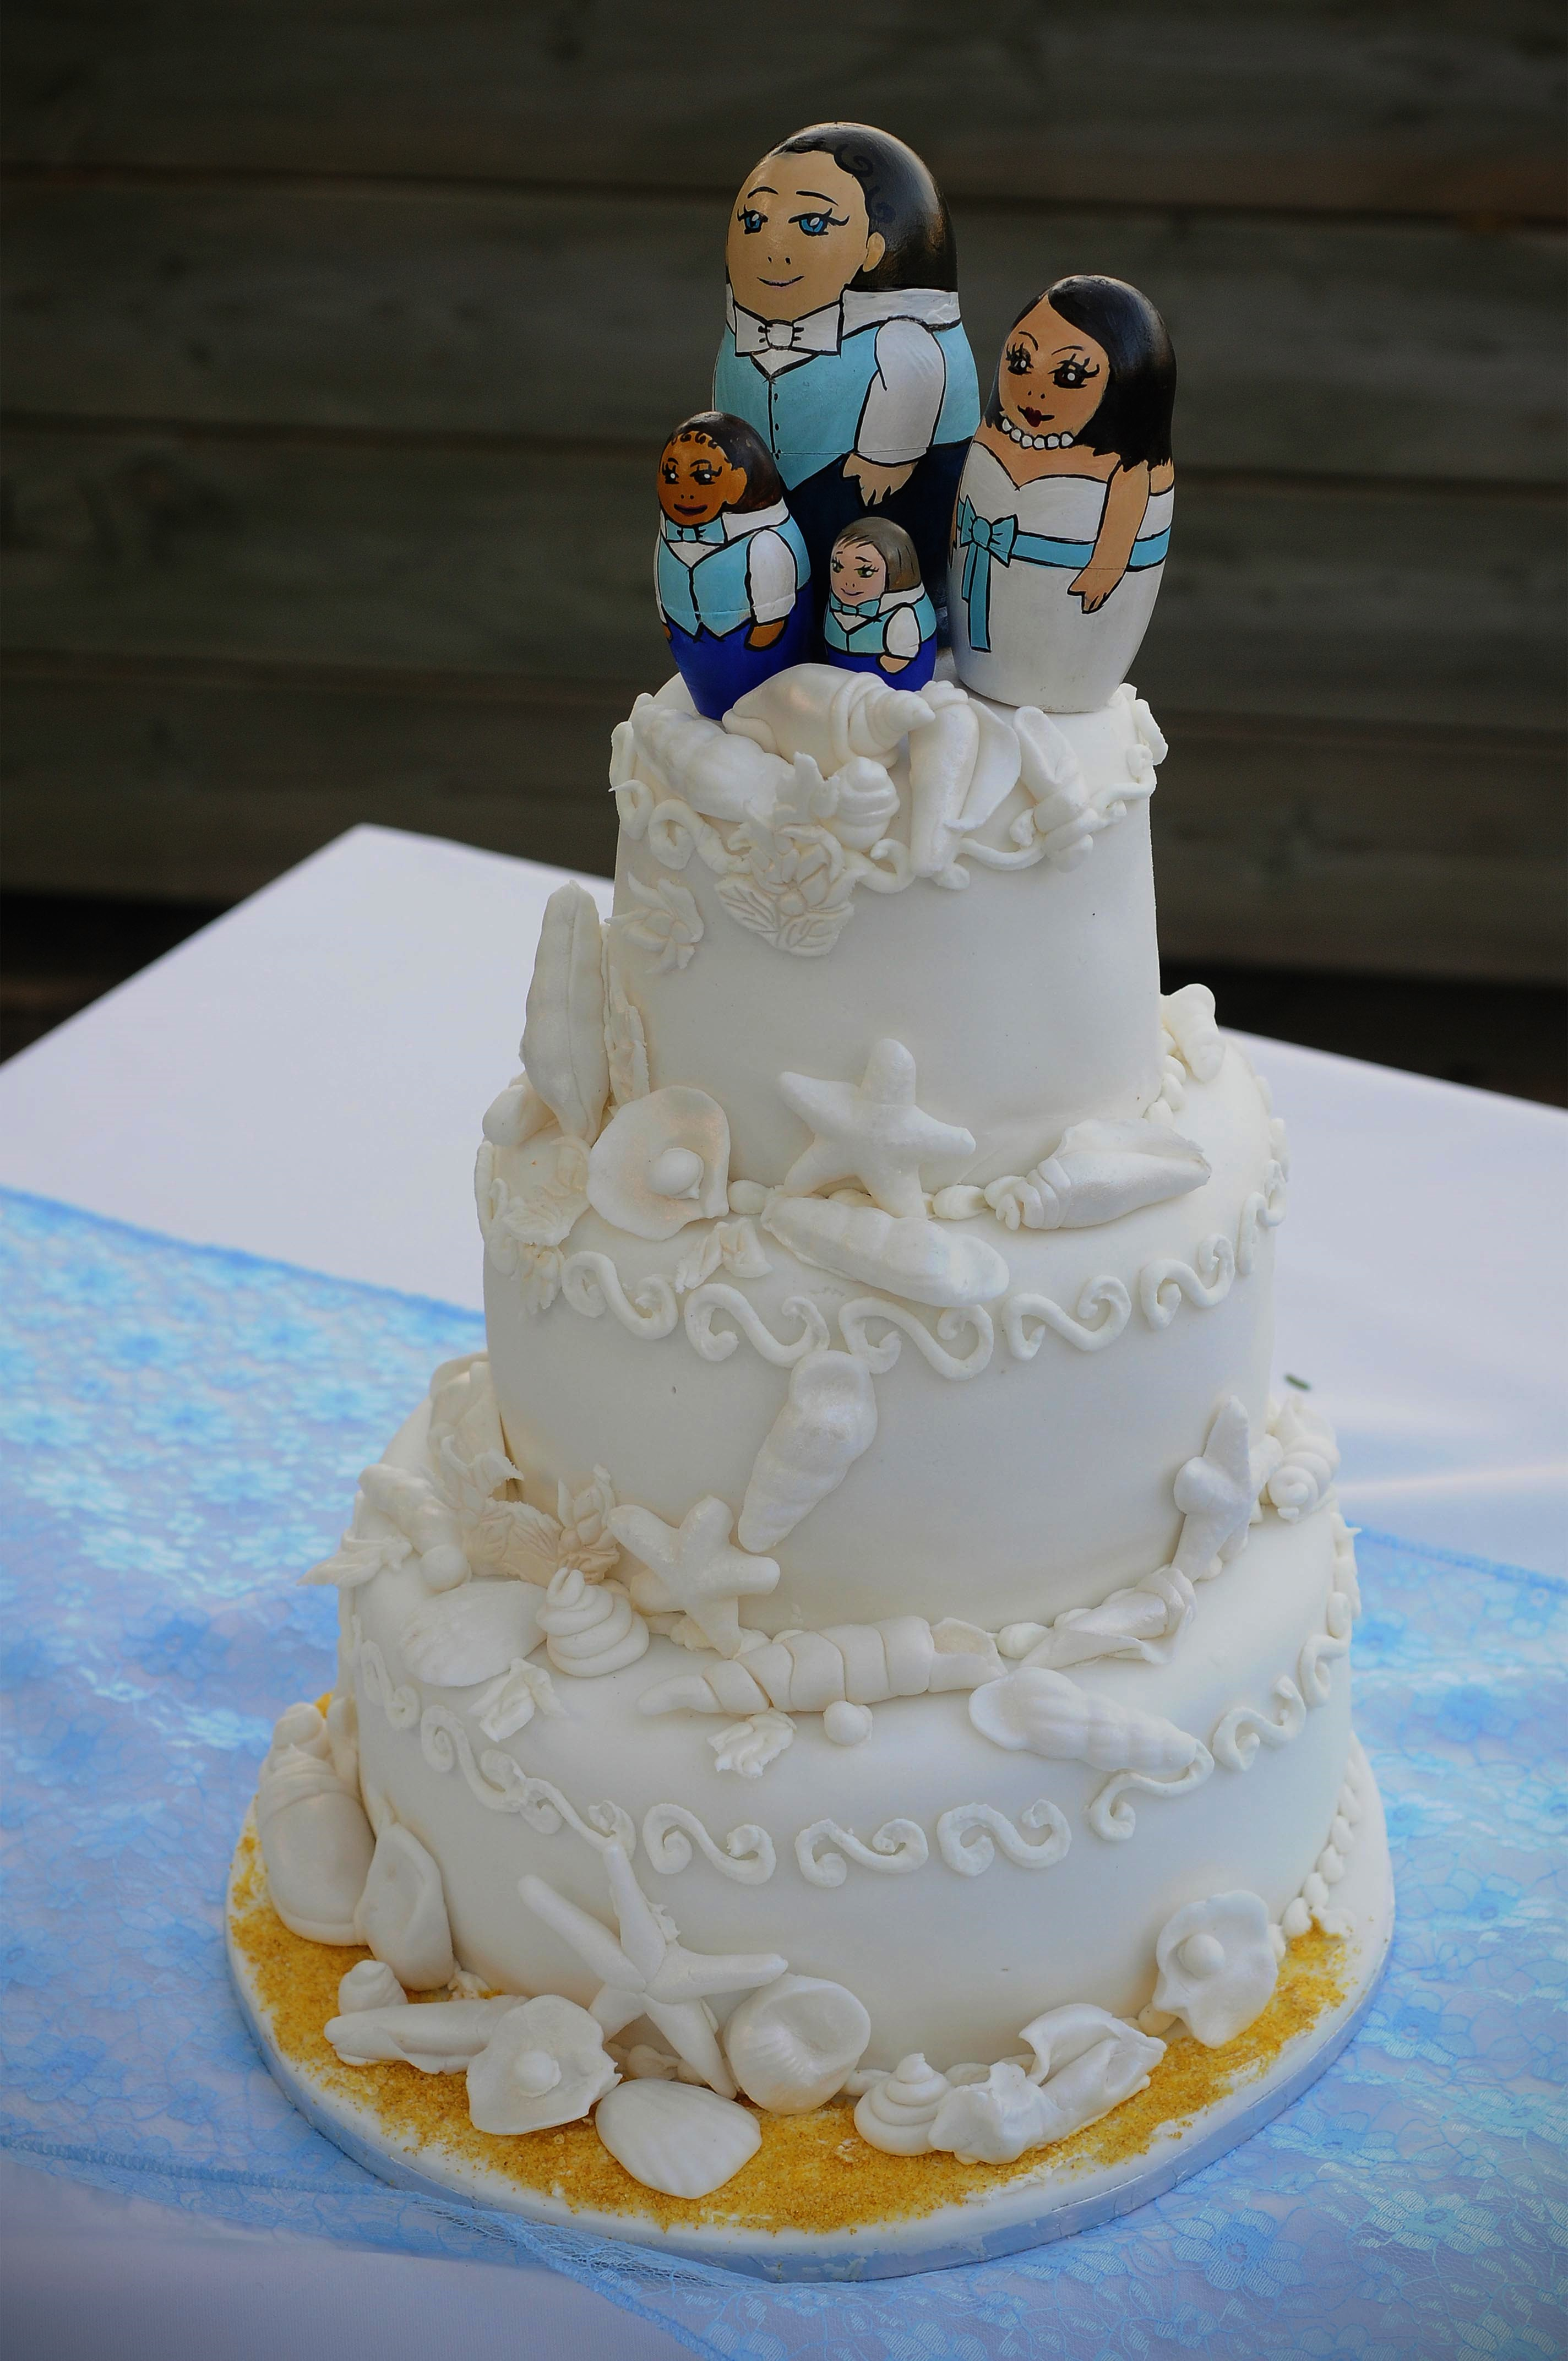 Wedding cakes in Northern Cyprus (29)